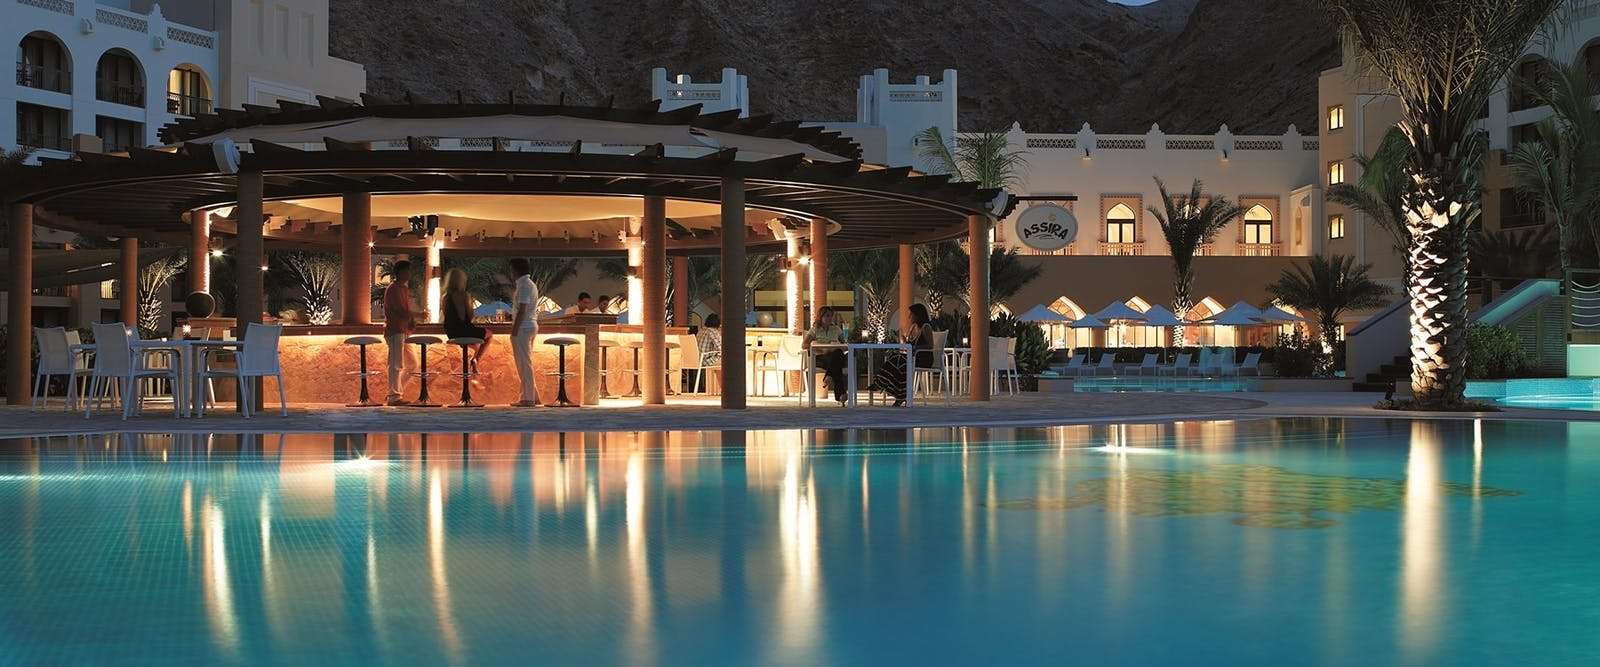 Pool bar at Shangri La Barr Al Jissah Resort & Spa, Oman - Al Waha